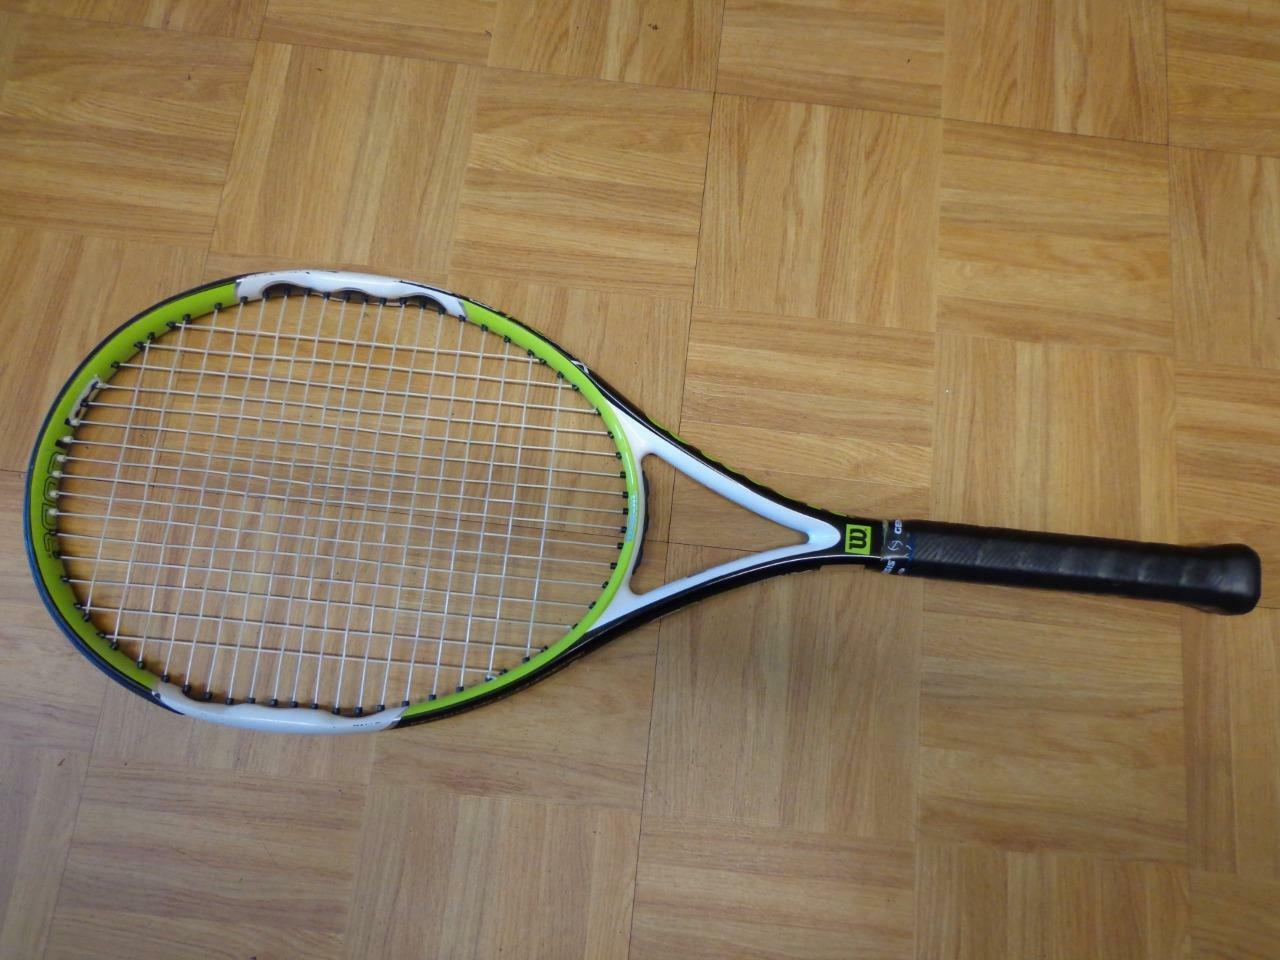 Wlson Ncode Pro Open X 27.5 inches 100 head 4 5/8 grip Tennis Racquet